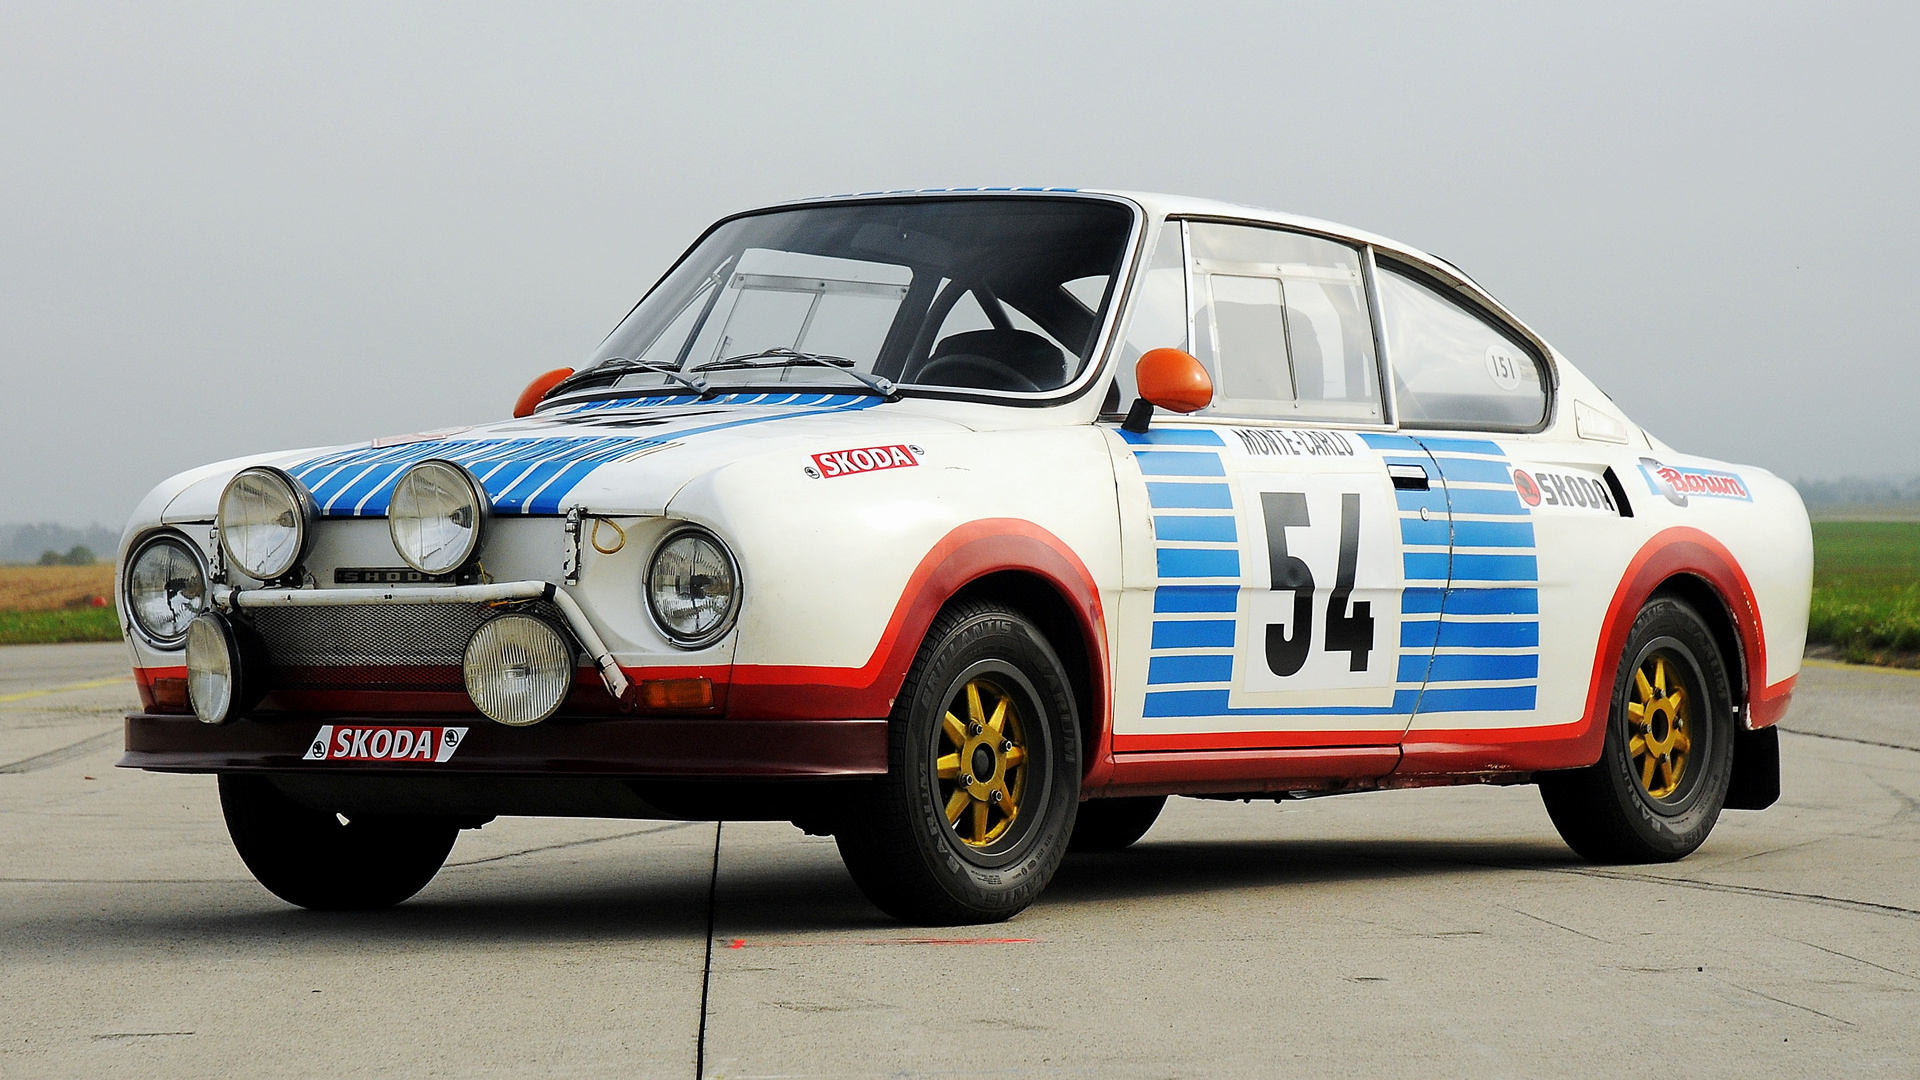 1975 Skoda 130 RS Rally Car - Wallpapers and HD Images ...